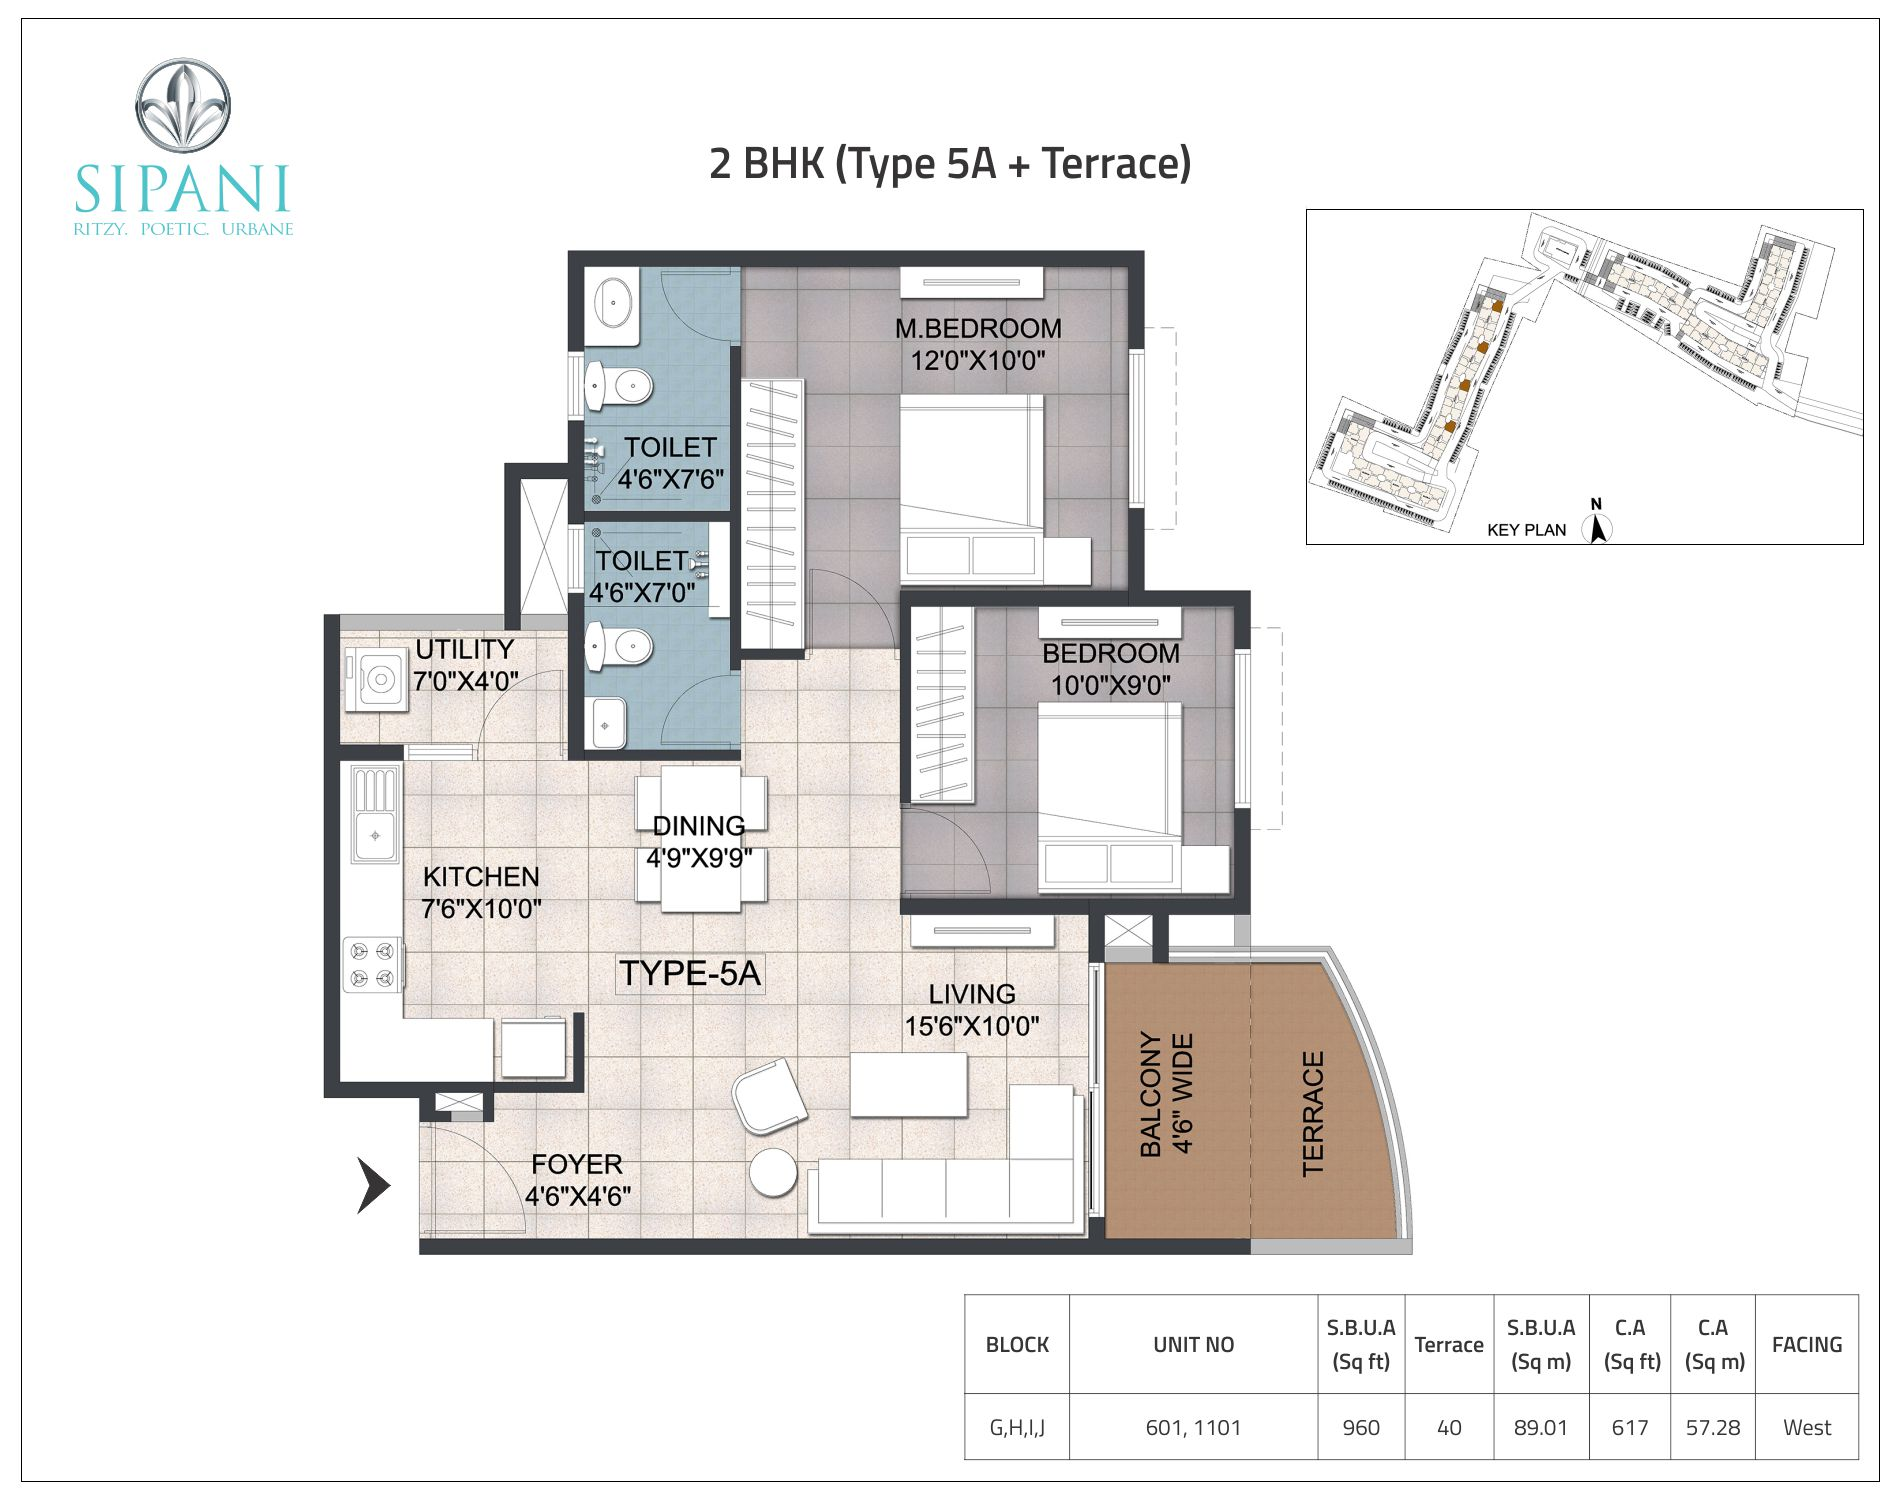 2_BHK_(Type_5A+Terrace)